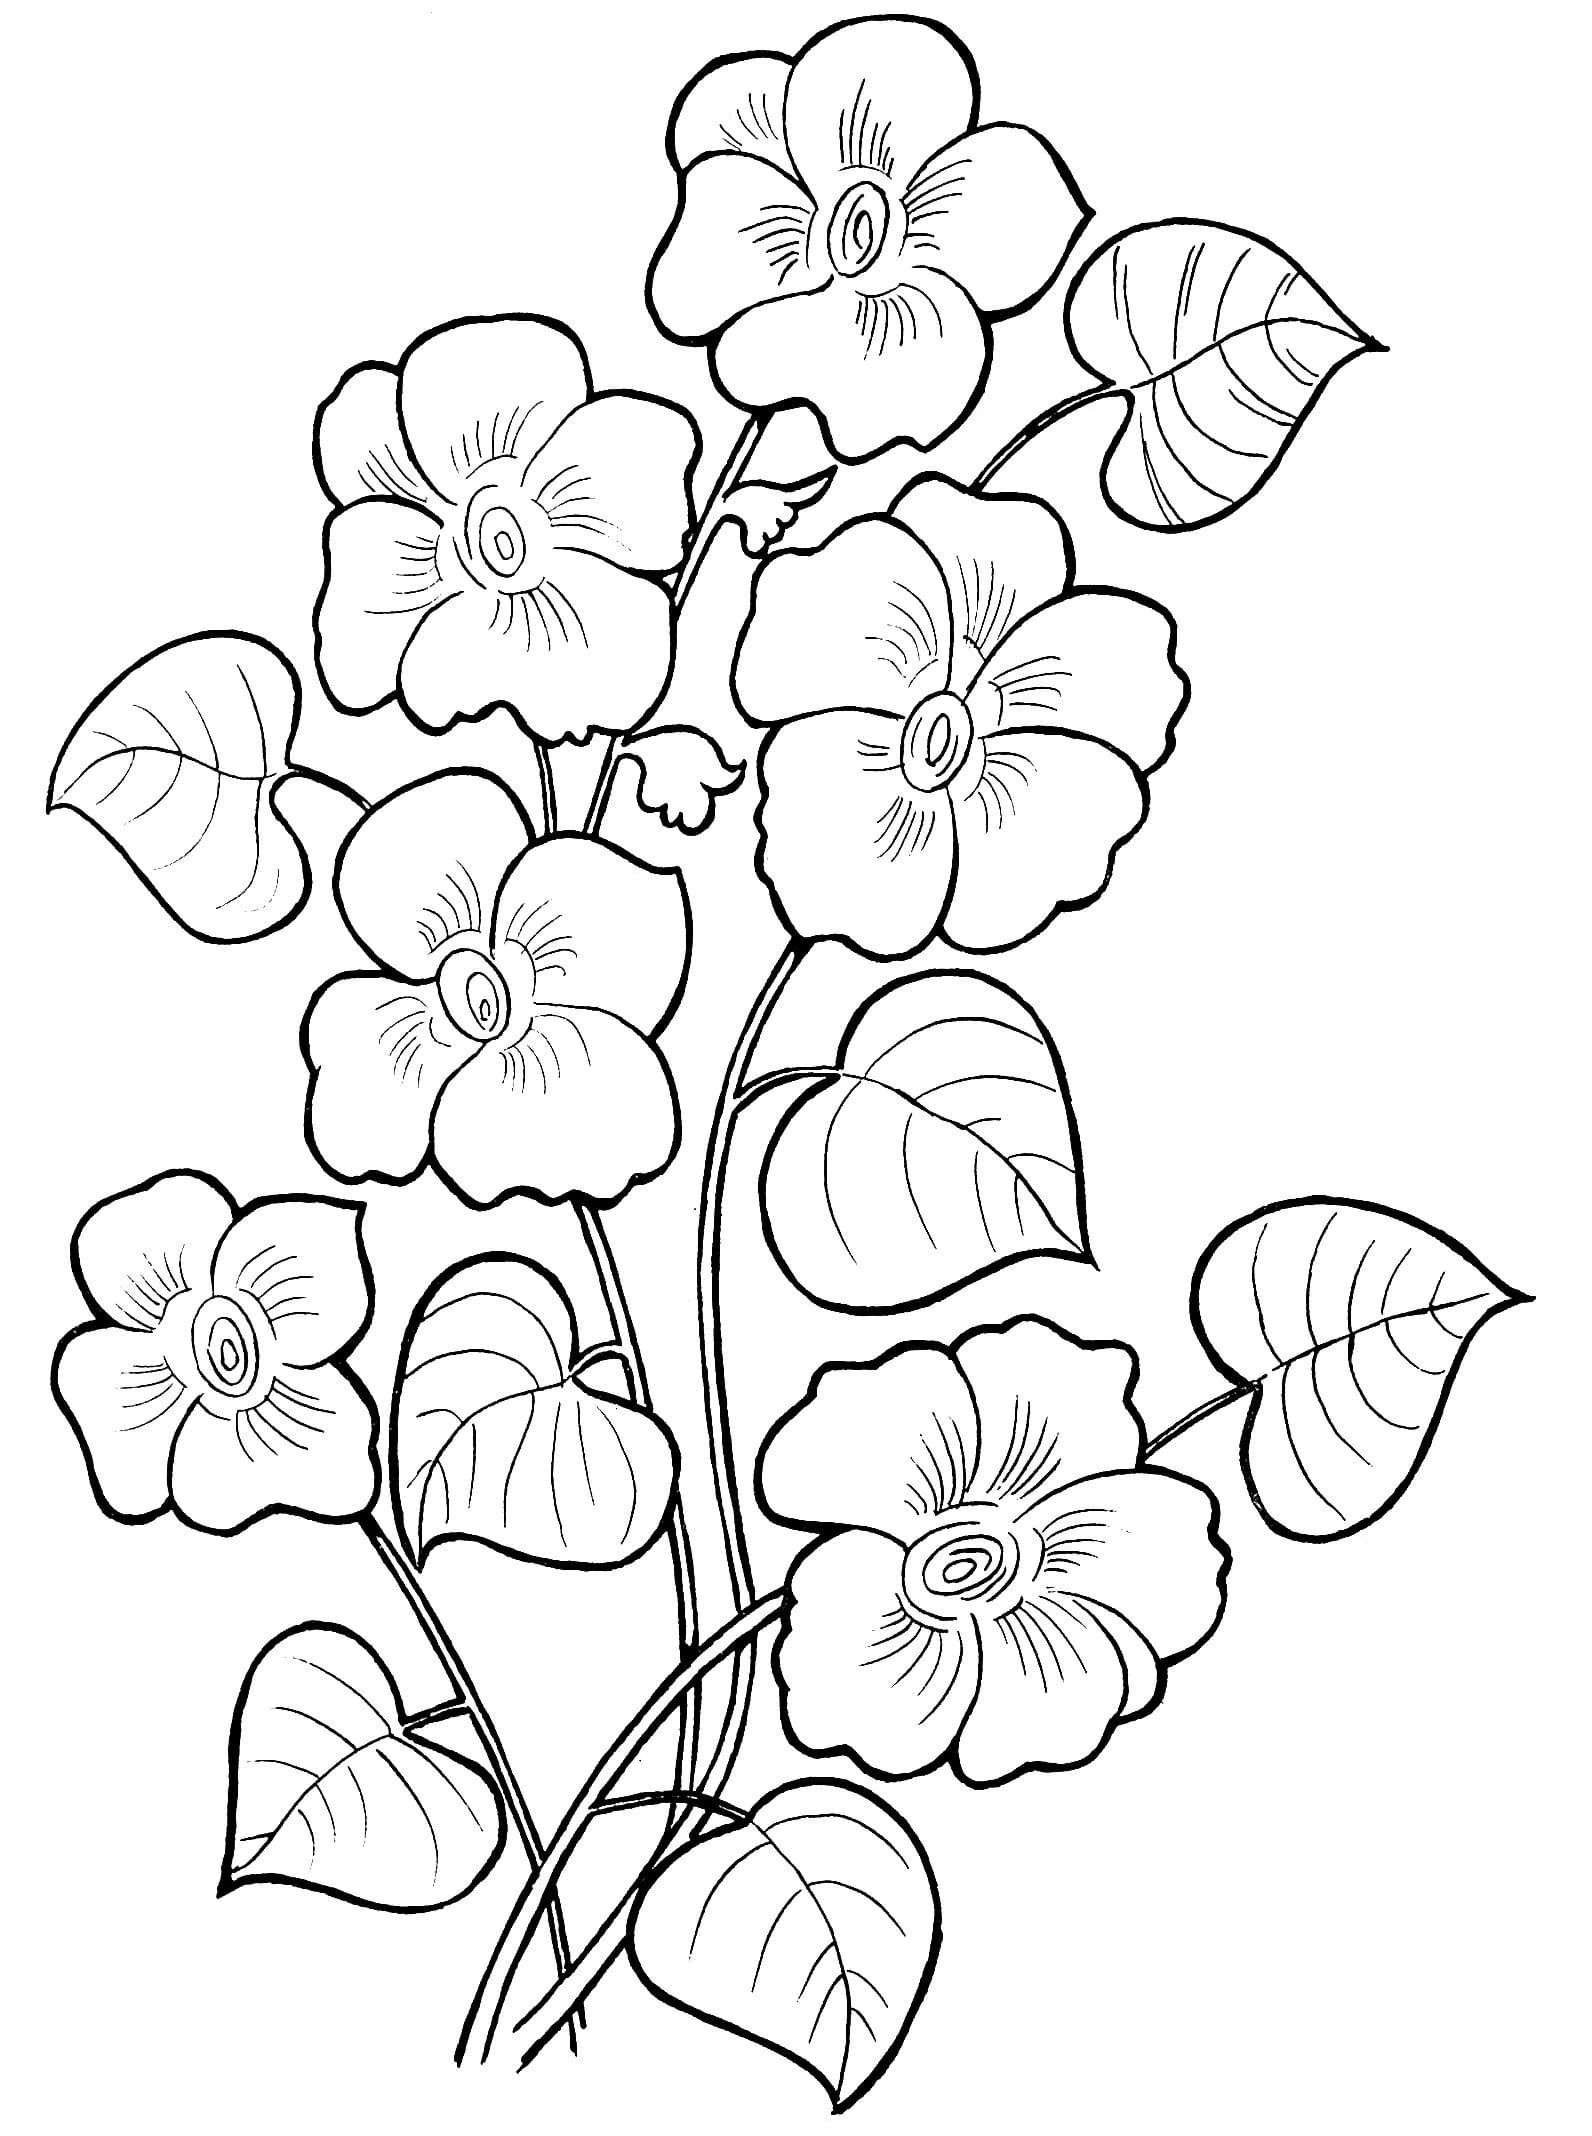 vintage flower coloring pages pin by frances haddock on digi stamps flower coloring coloring vintage pages flower